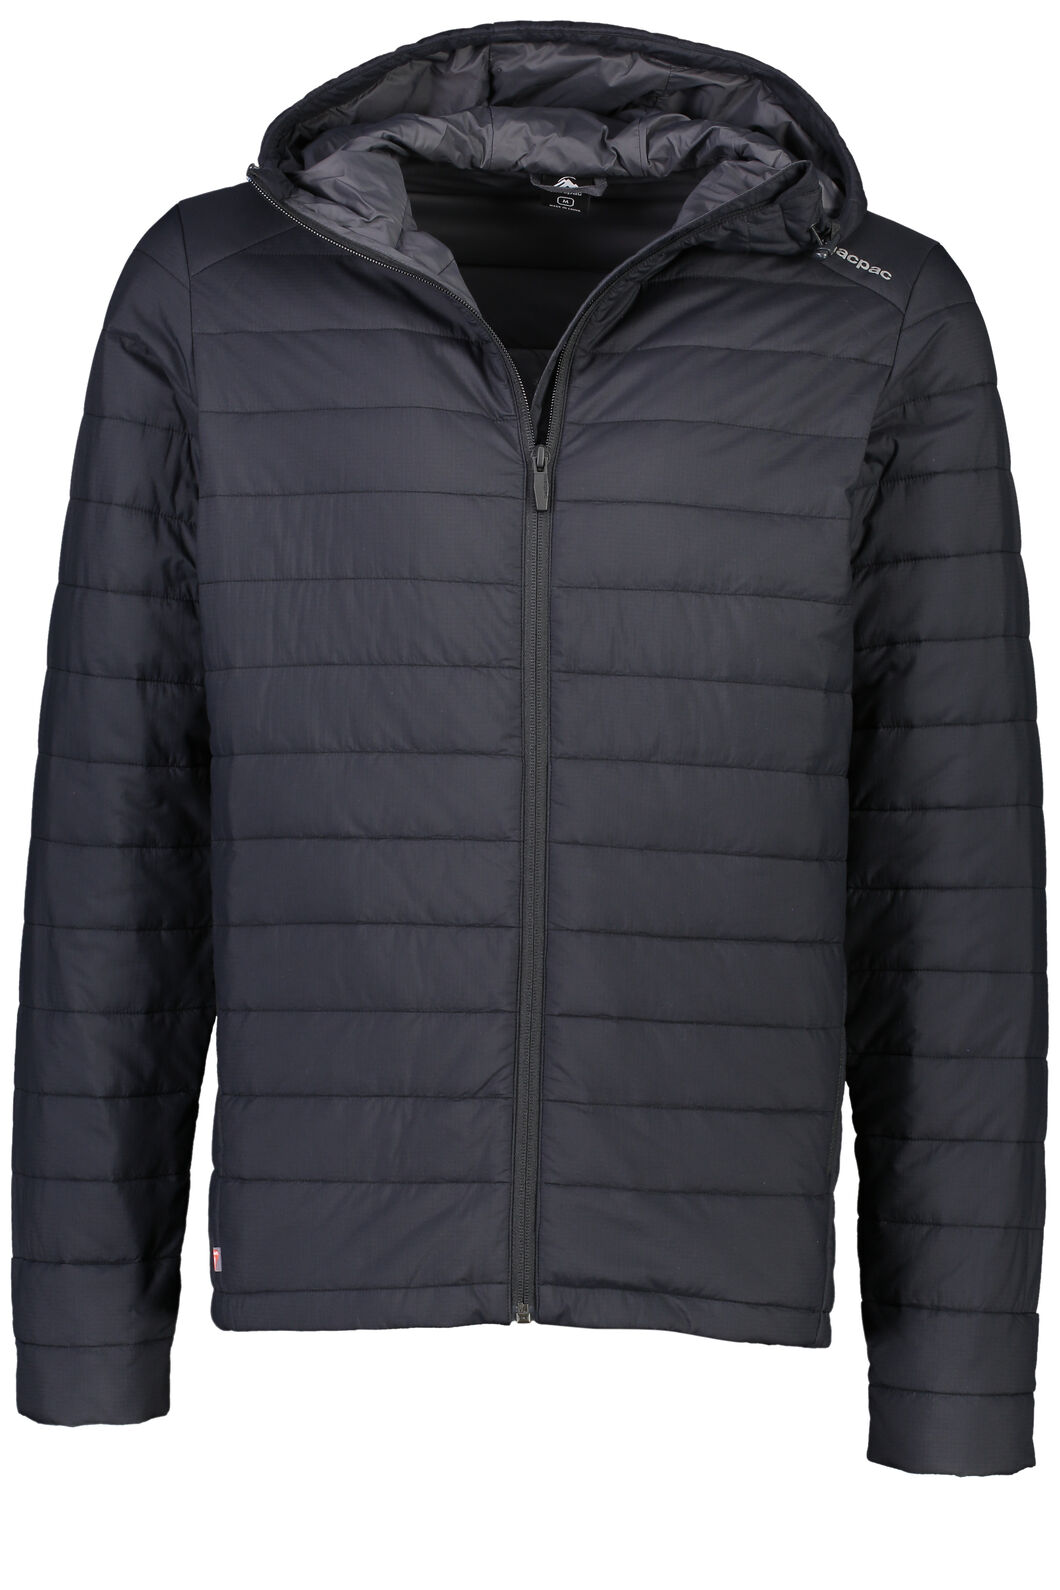 Macpac ETA PrimaLoft® Jacket - Men's, Black, hi-res